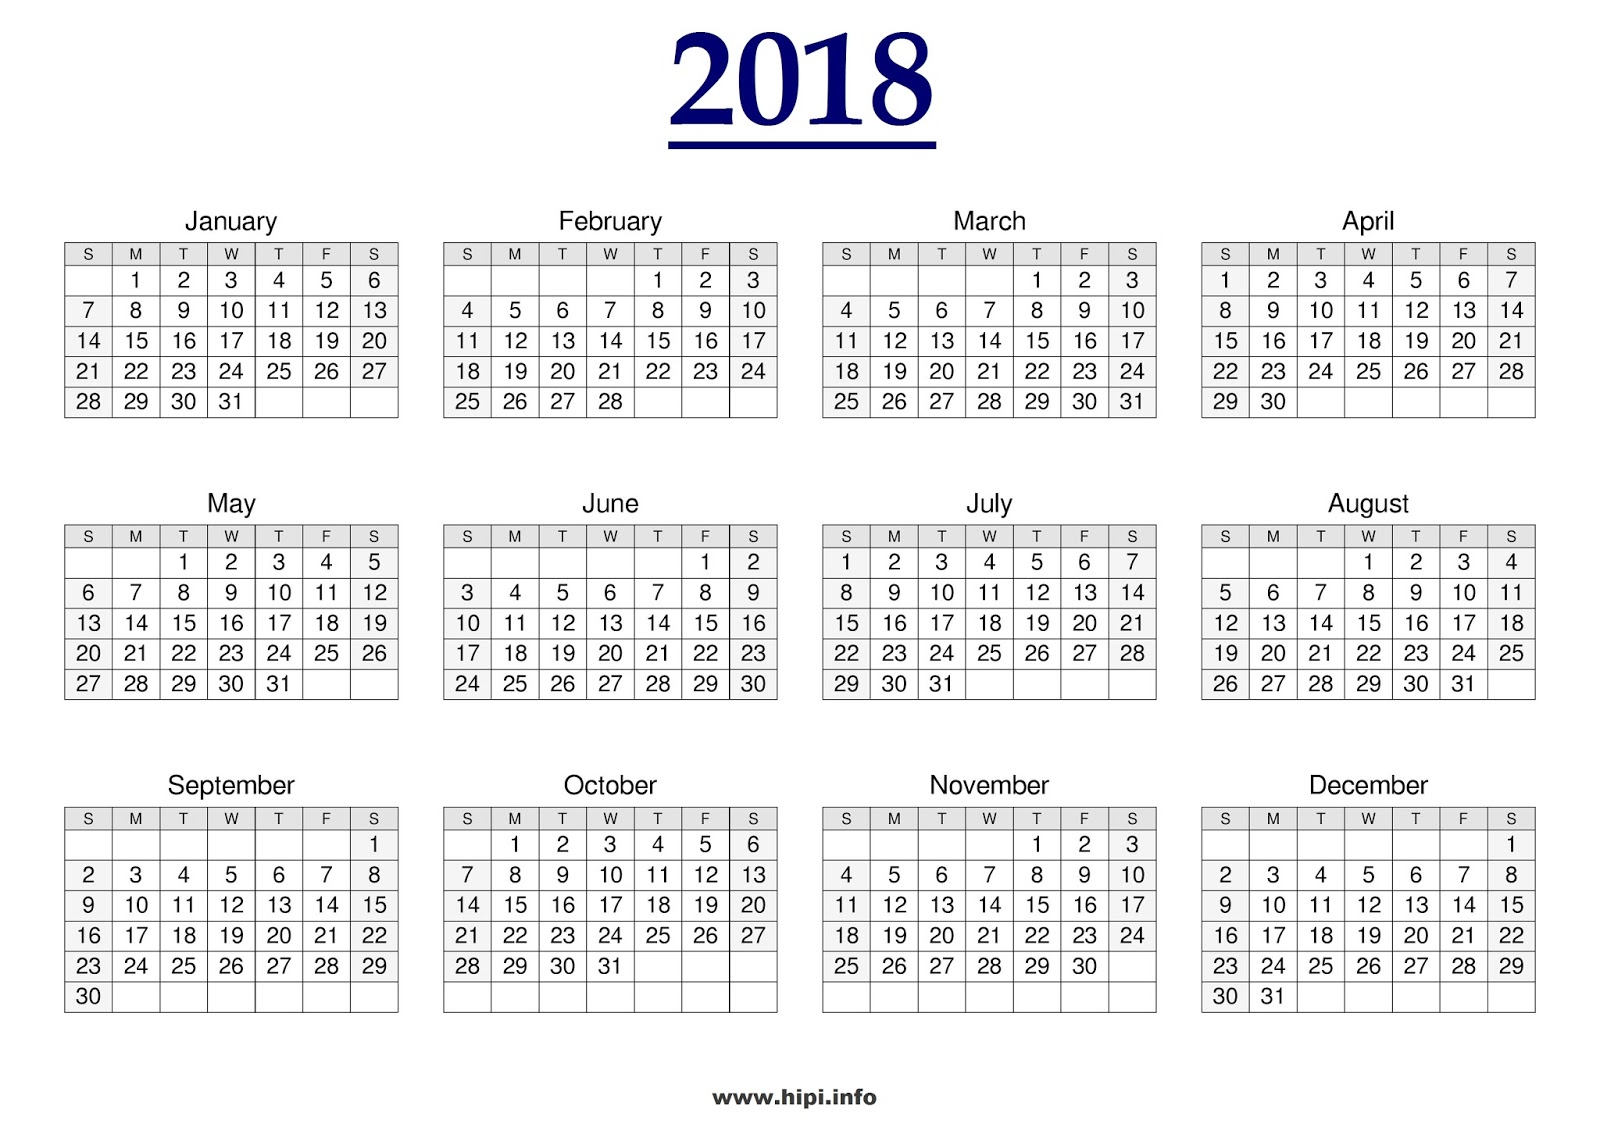 2018 calendar on one page - Gse.bookbinder.co